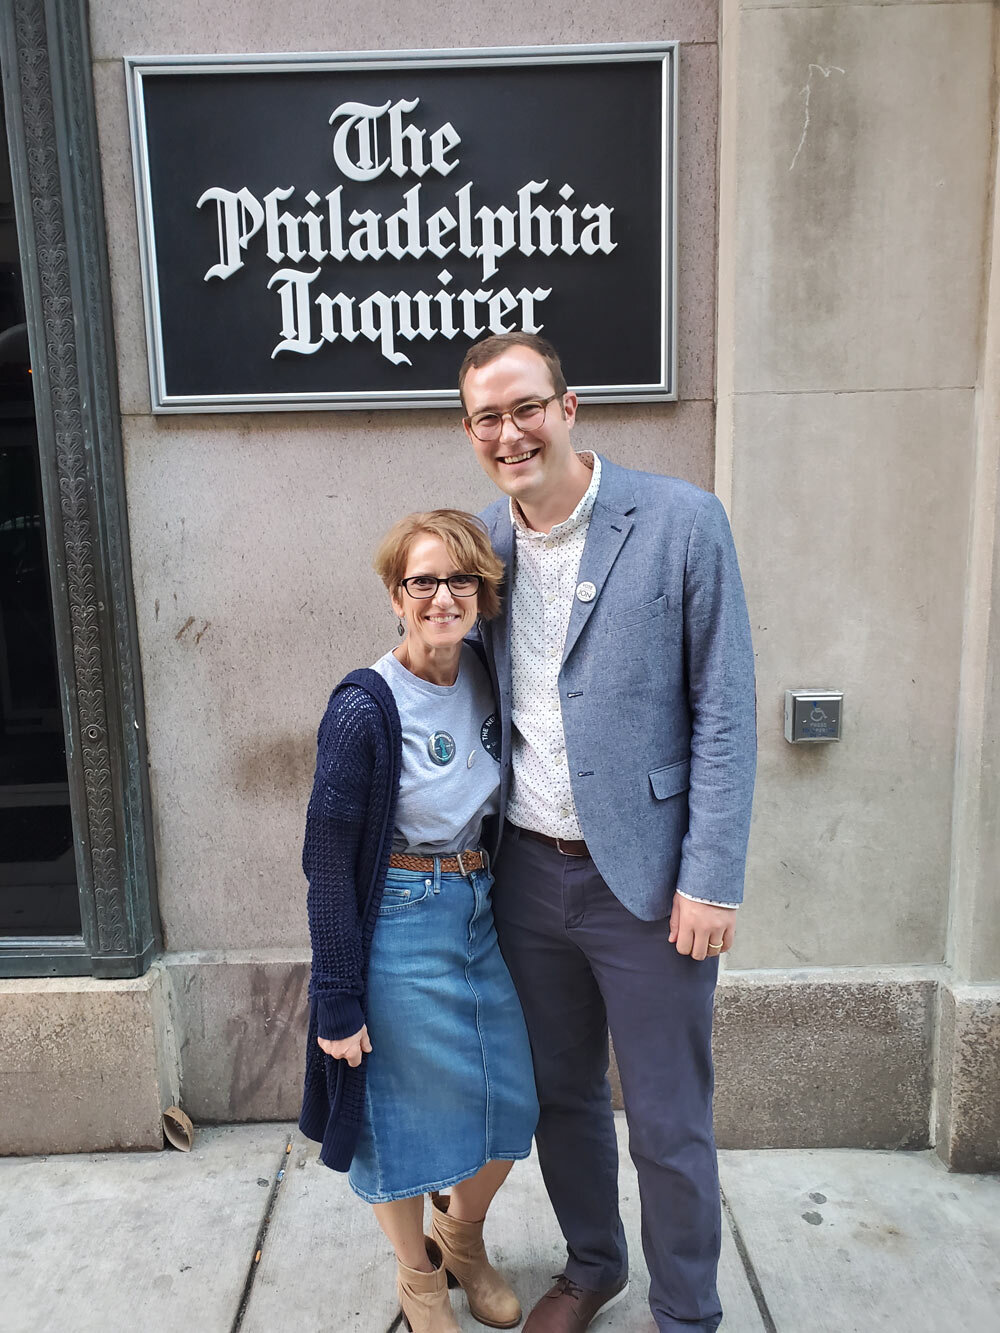 Diane and Jon outside The Philadelphia Inquirer